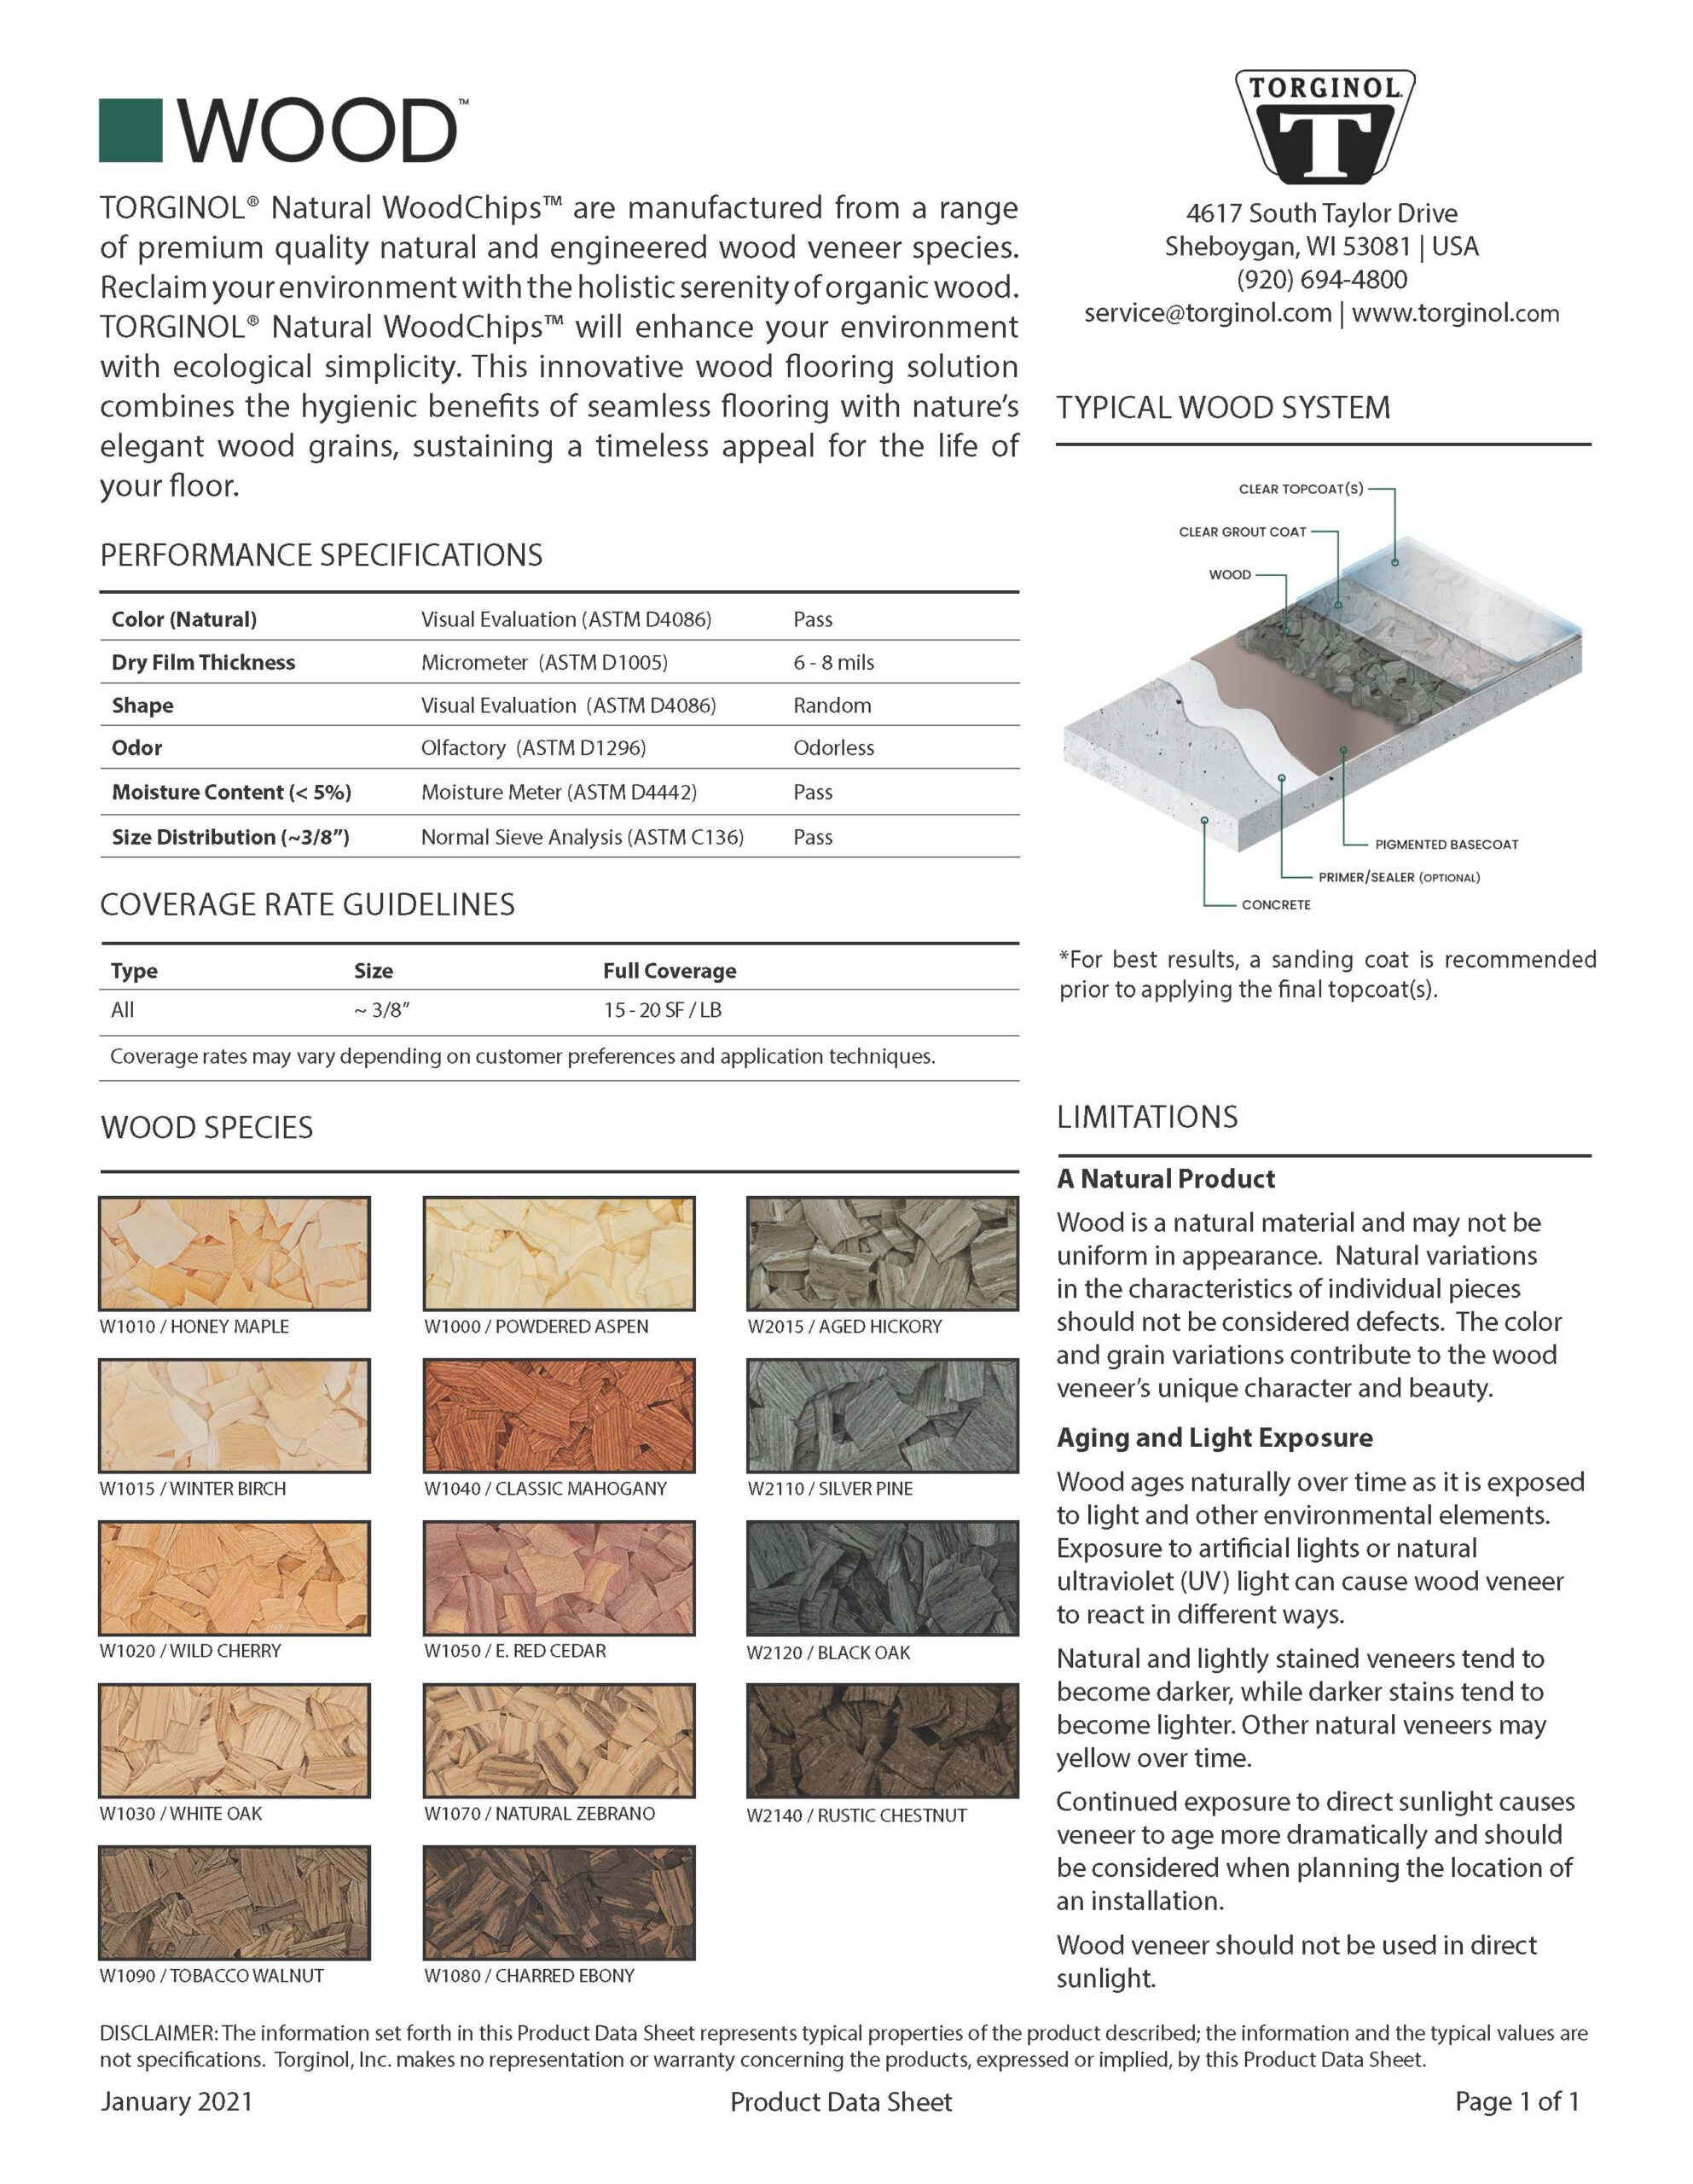 WOOD Technical Data Sheet